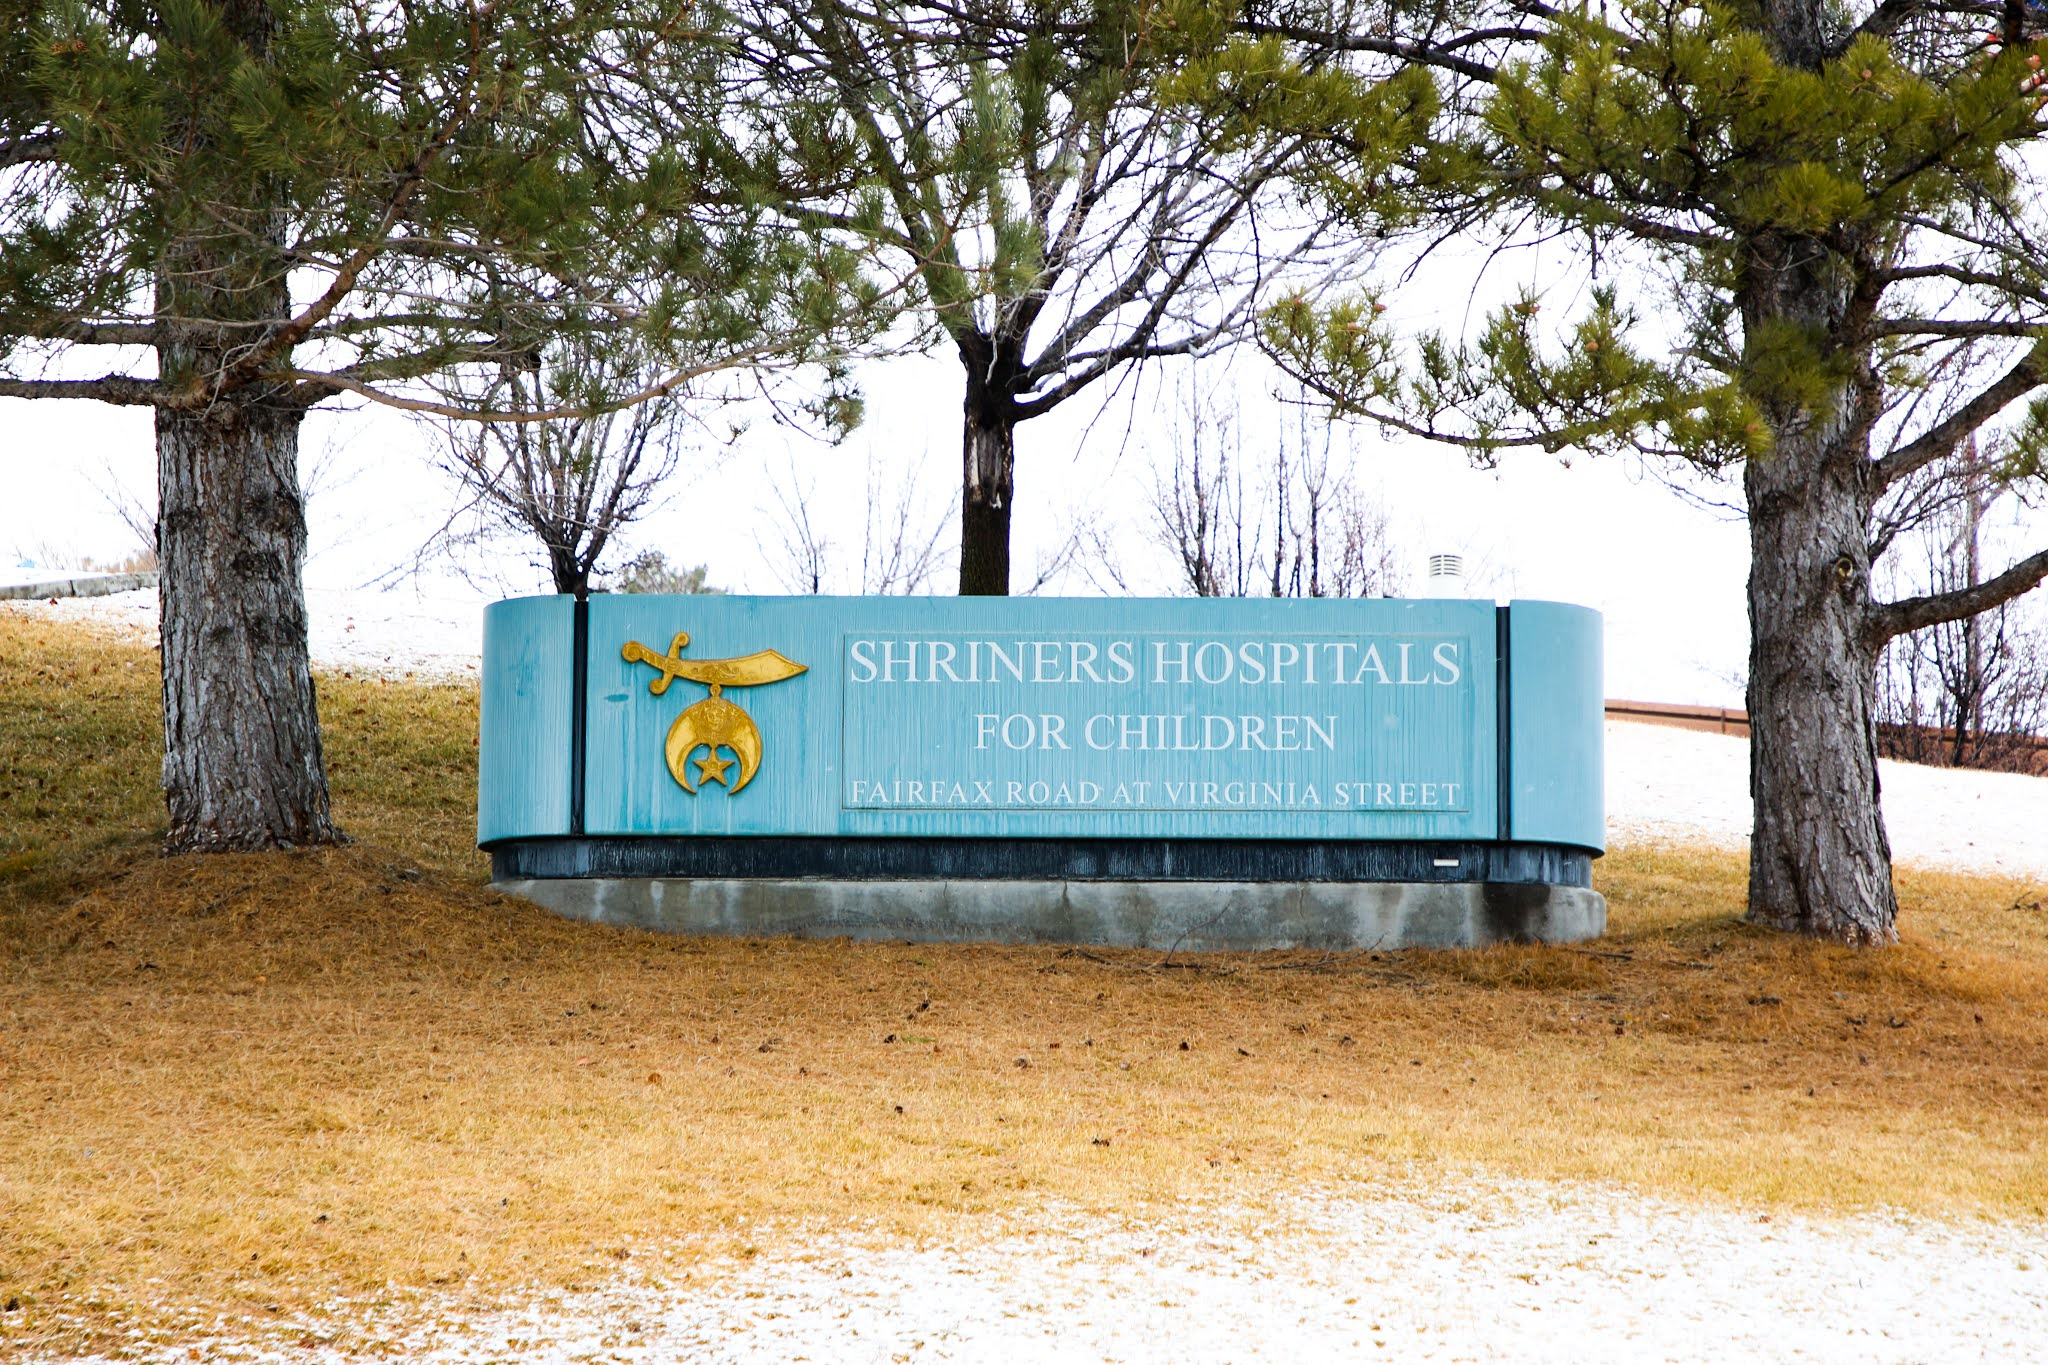 What is shriners hospital. Shriners hospital for children. Is shriners hospital free. How to save money on children's medical care. Free medical care for disabled children. Shriners hospital for children locations. Is shriners hospital really free. #healthcare #finance #children #disability #shriners #charity